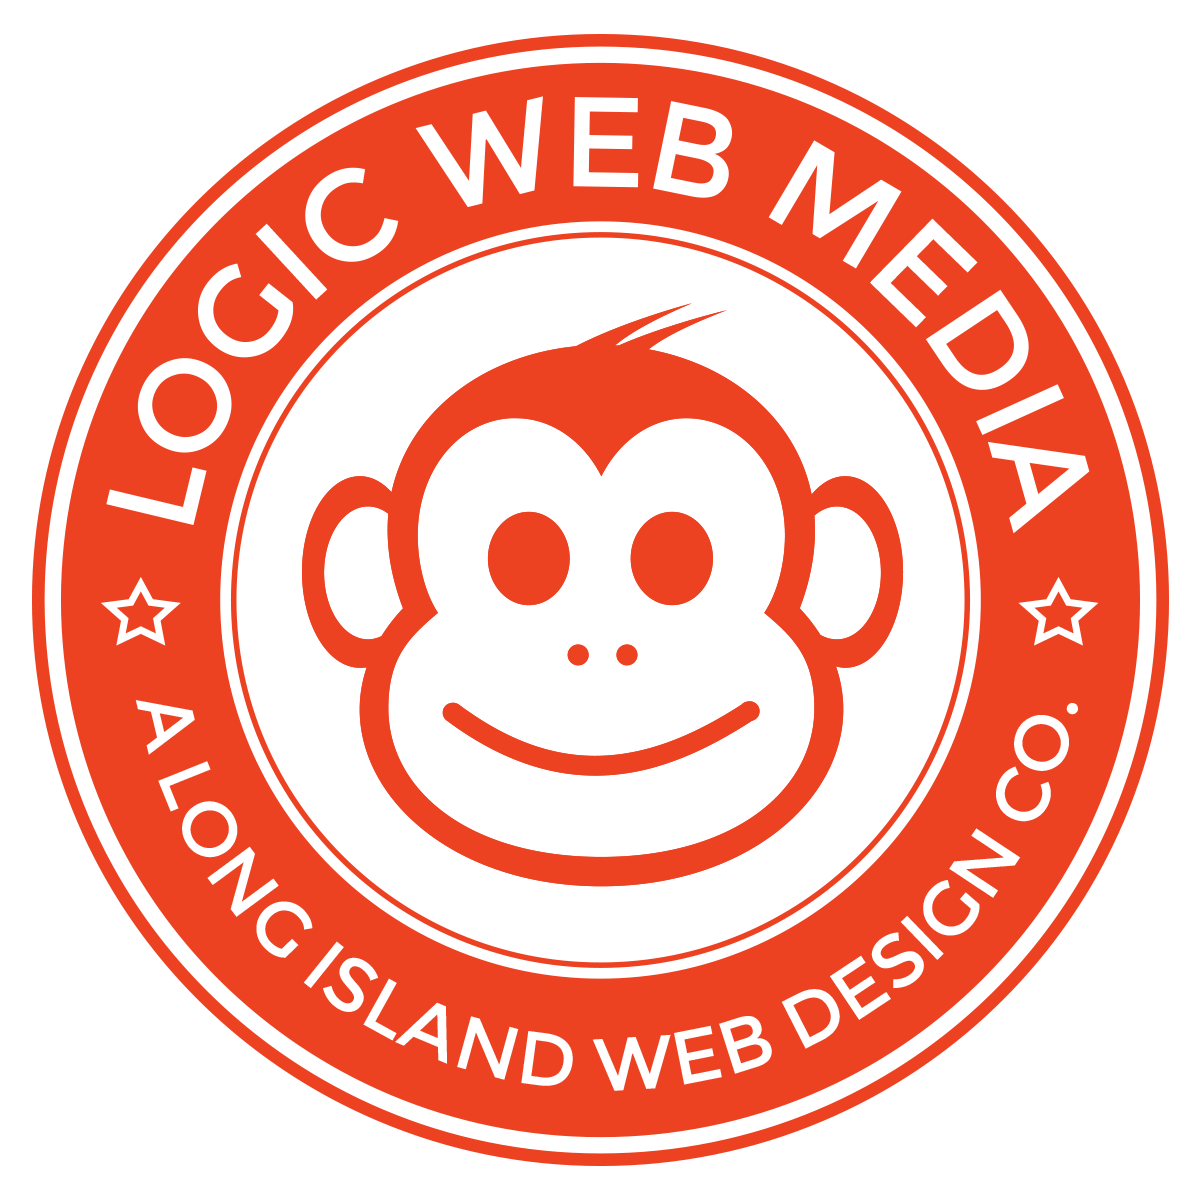 Long Island Search Engine Optimization (SEO) | Logic Web Media